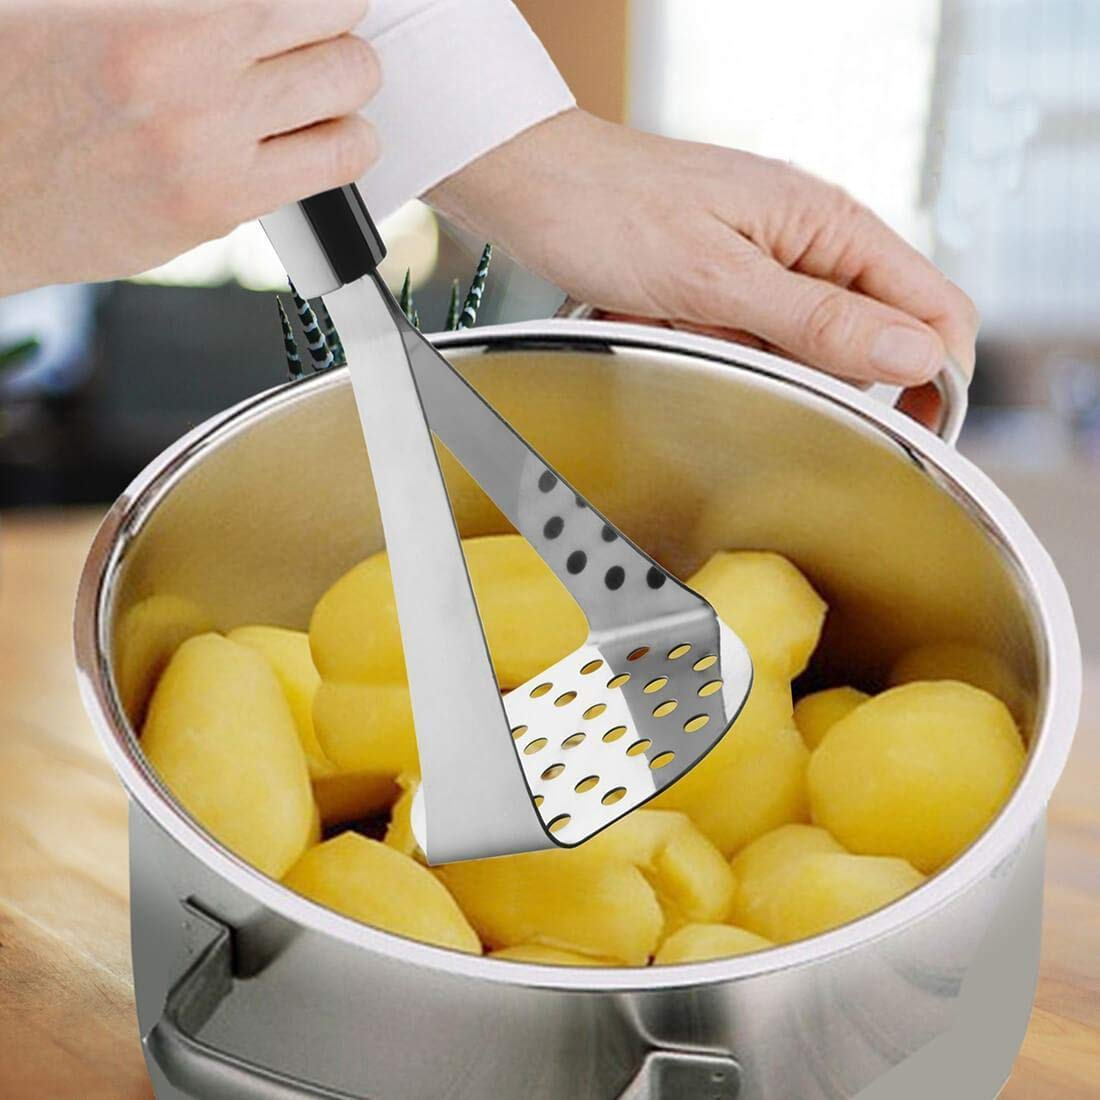 A potato masher is used to mash potatoes in the image.